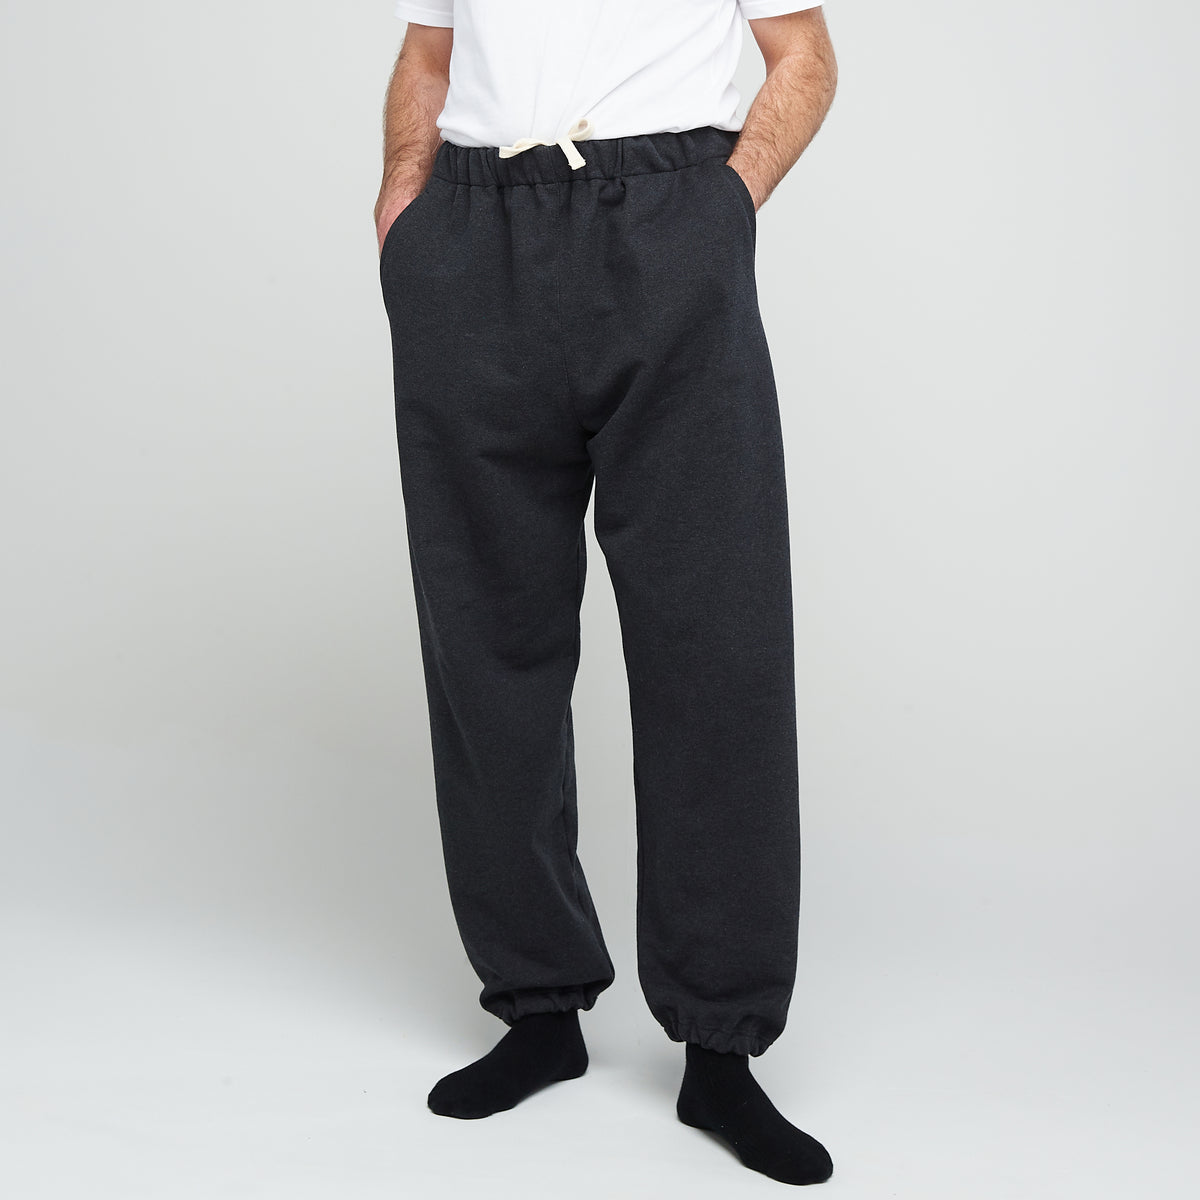 Men's Sweatpants Charcoal - Community Clothing